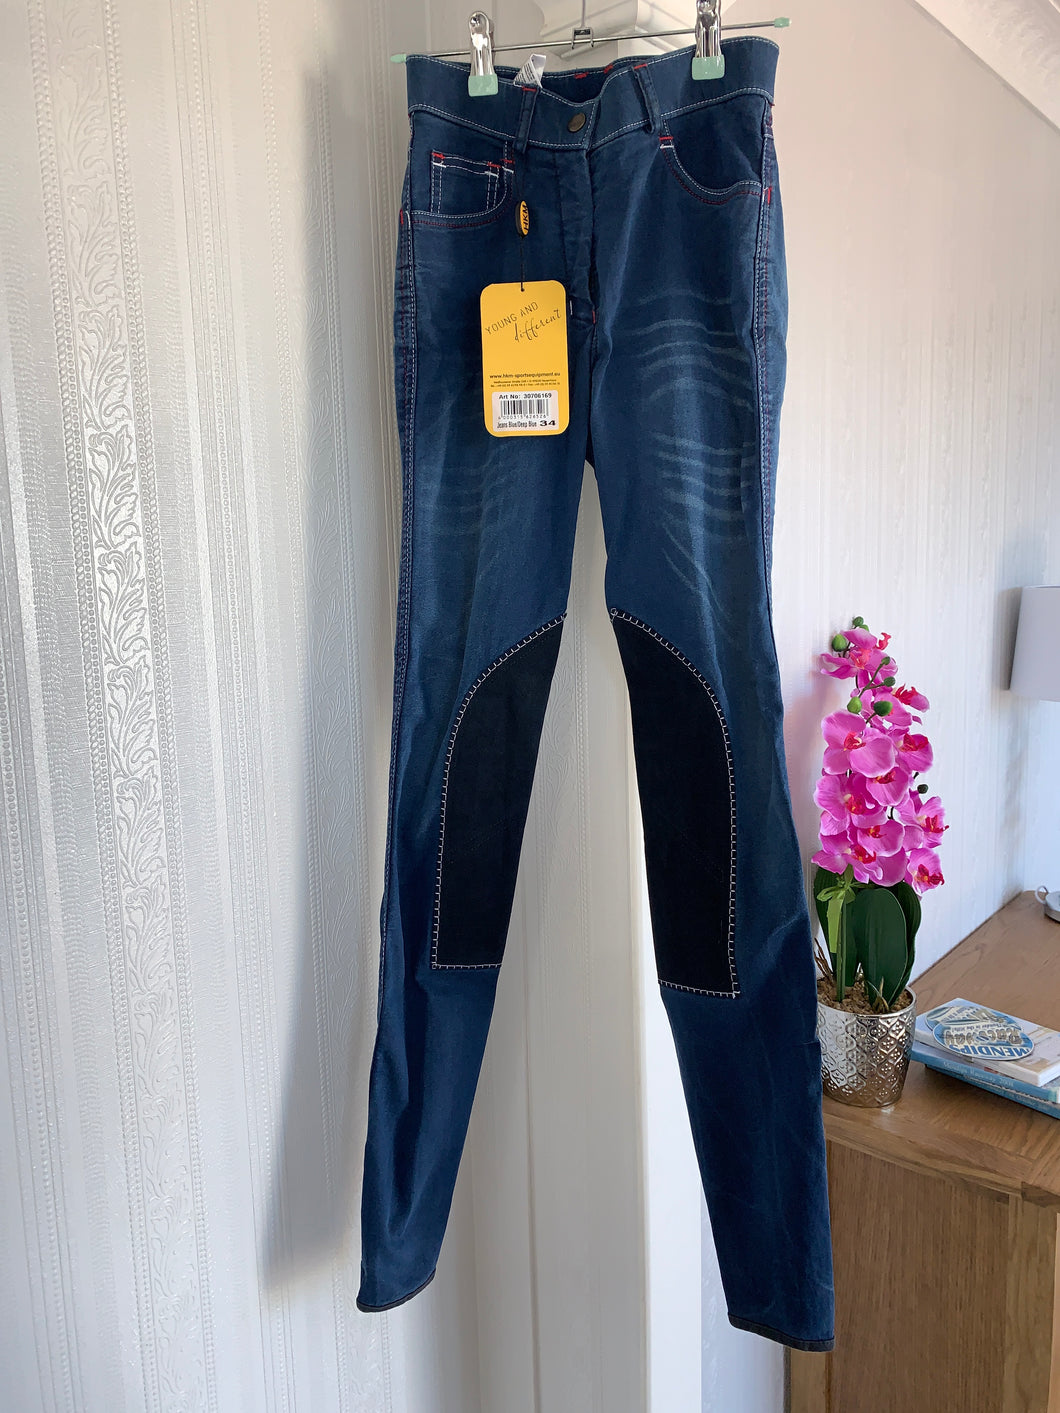 Hkm Denim Breeches - Suede Seat - Size 6 or 8 Ladies